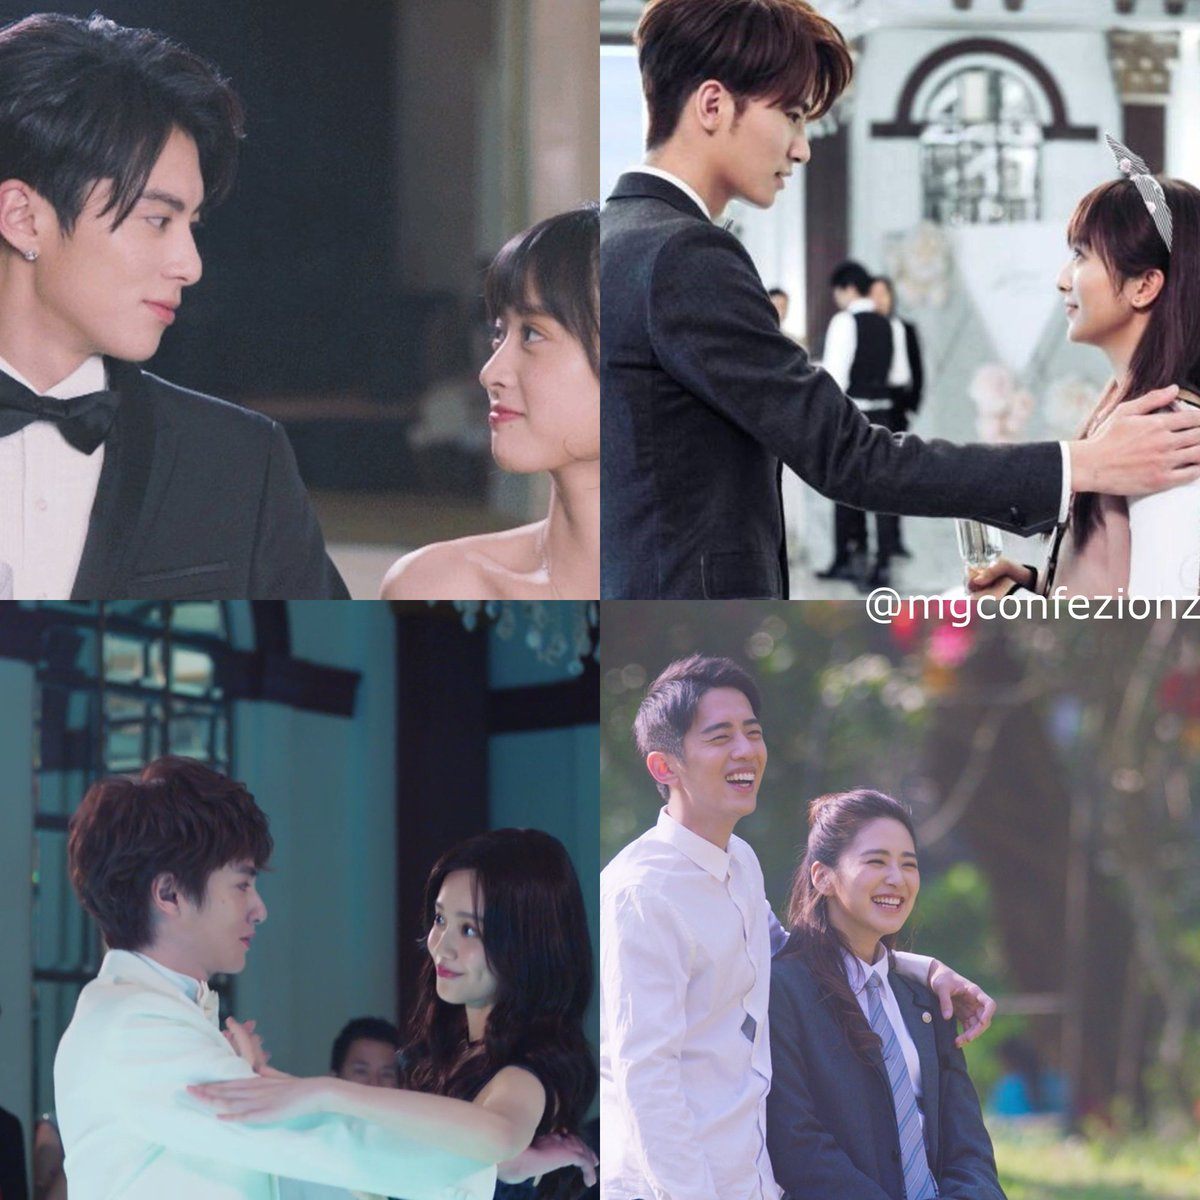 Meteor Garden Confessions On Twitter July 9 2018 Exactly One Year Ago Meteor Garden 2018 Started Airing Thanks To The Whole Cast Crew And Staff Of This Drama For The Amazing Retelling